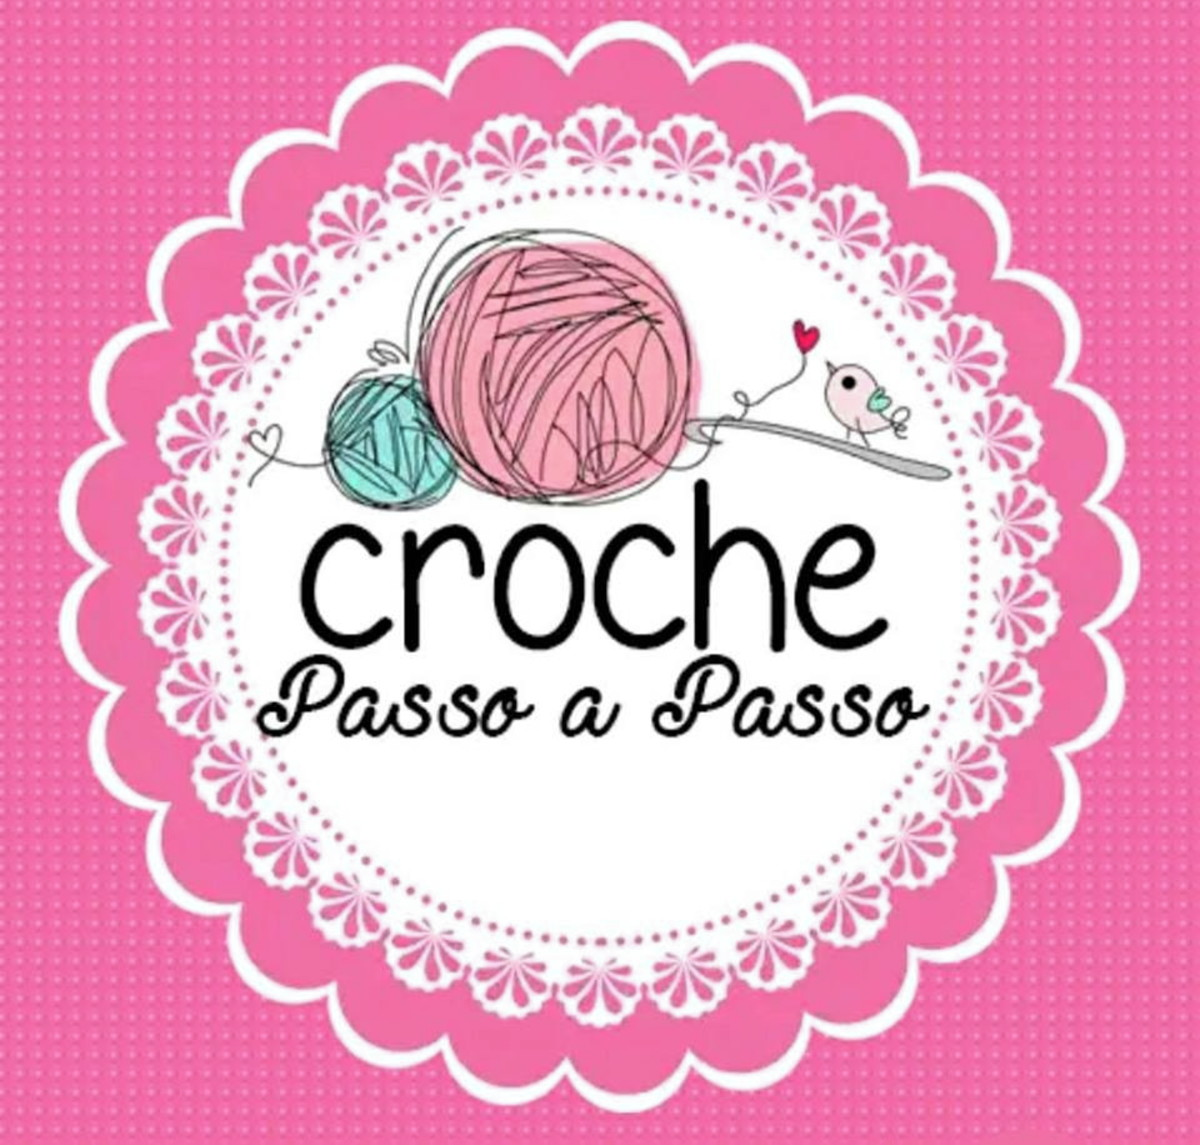 https://img.elo7.com.br/product/zoom/201695A/croche-passo-a-passo-croche-passo-a-passo.jpg